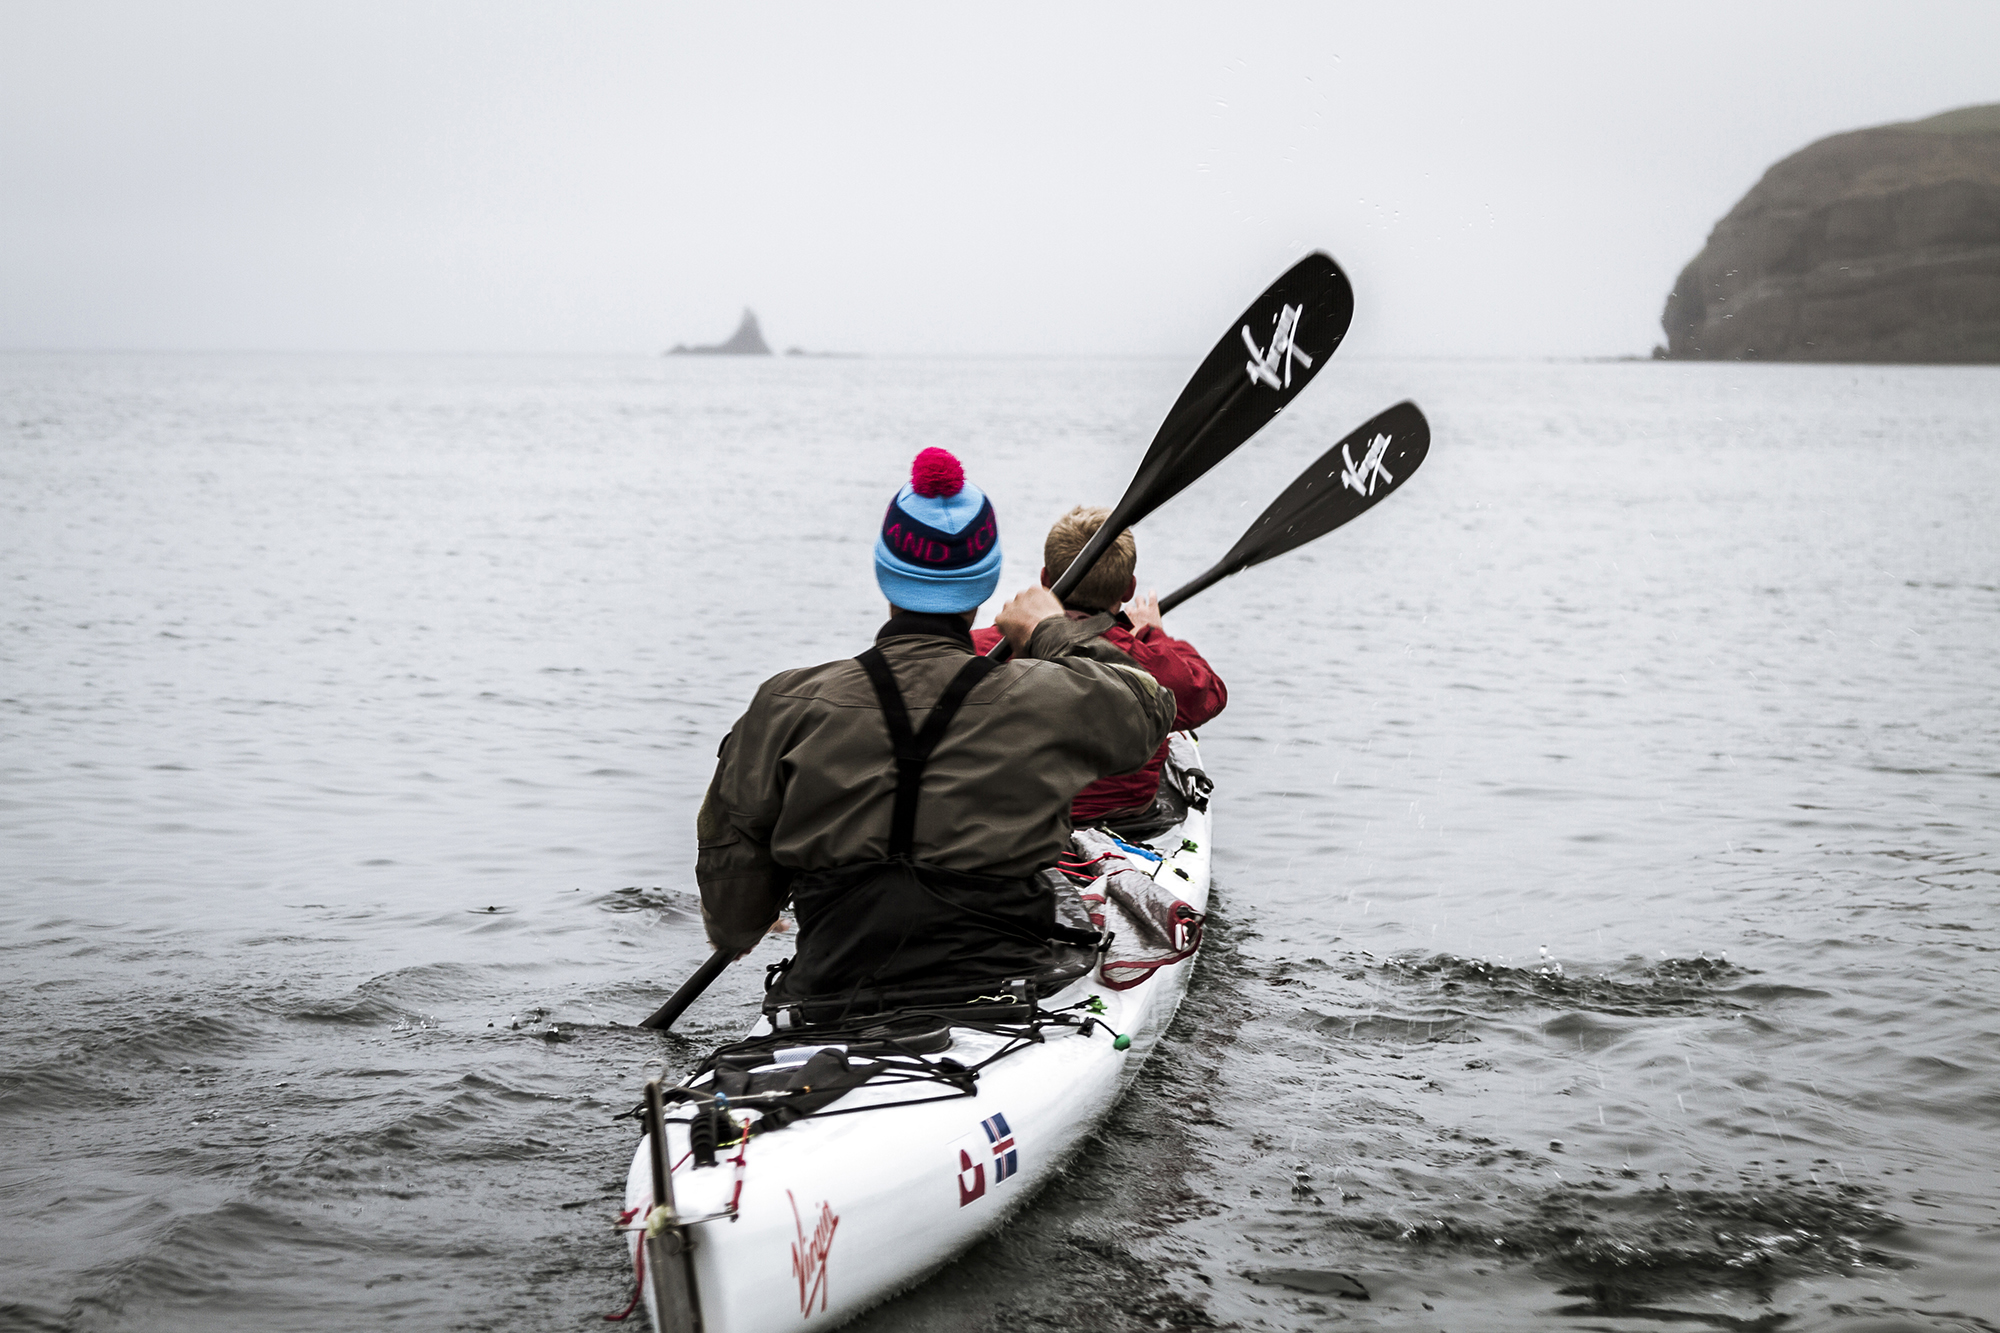 Olly Hicks head out in his carbon fibre kayak with companion George Bullard